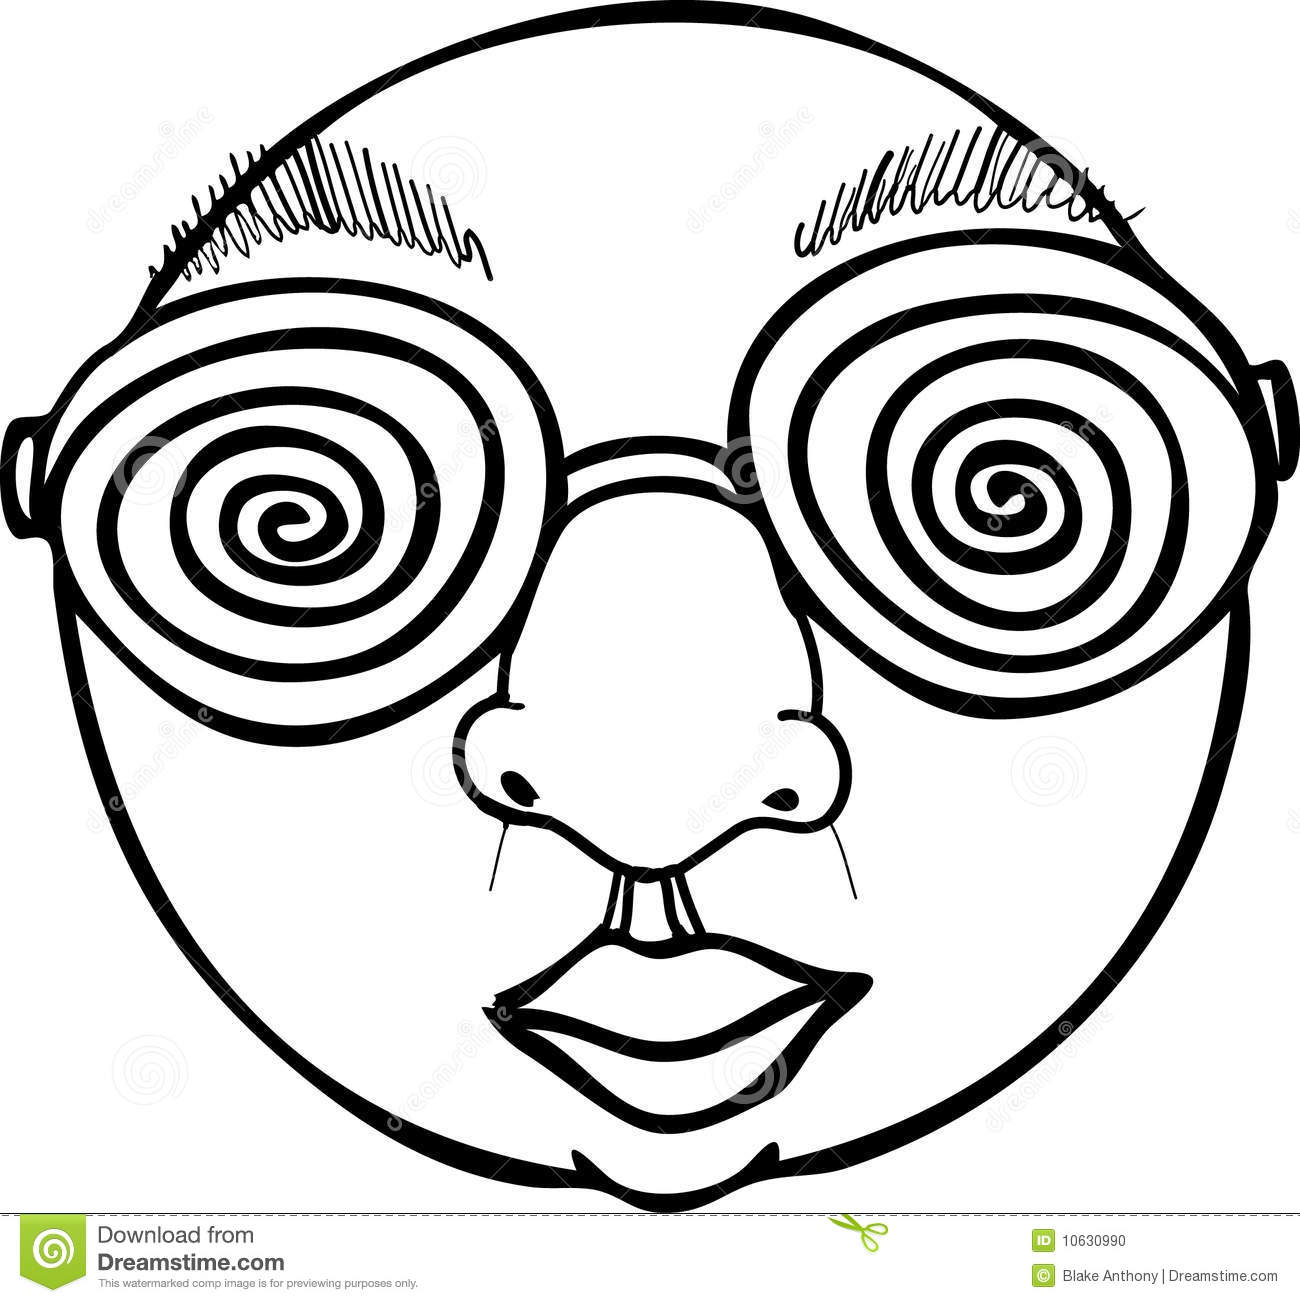 Hypnotic clipart eye glass Clipart Clipart Images hypnosis%20clipart Hypnosis